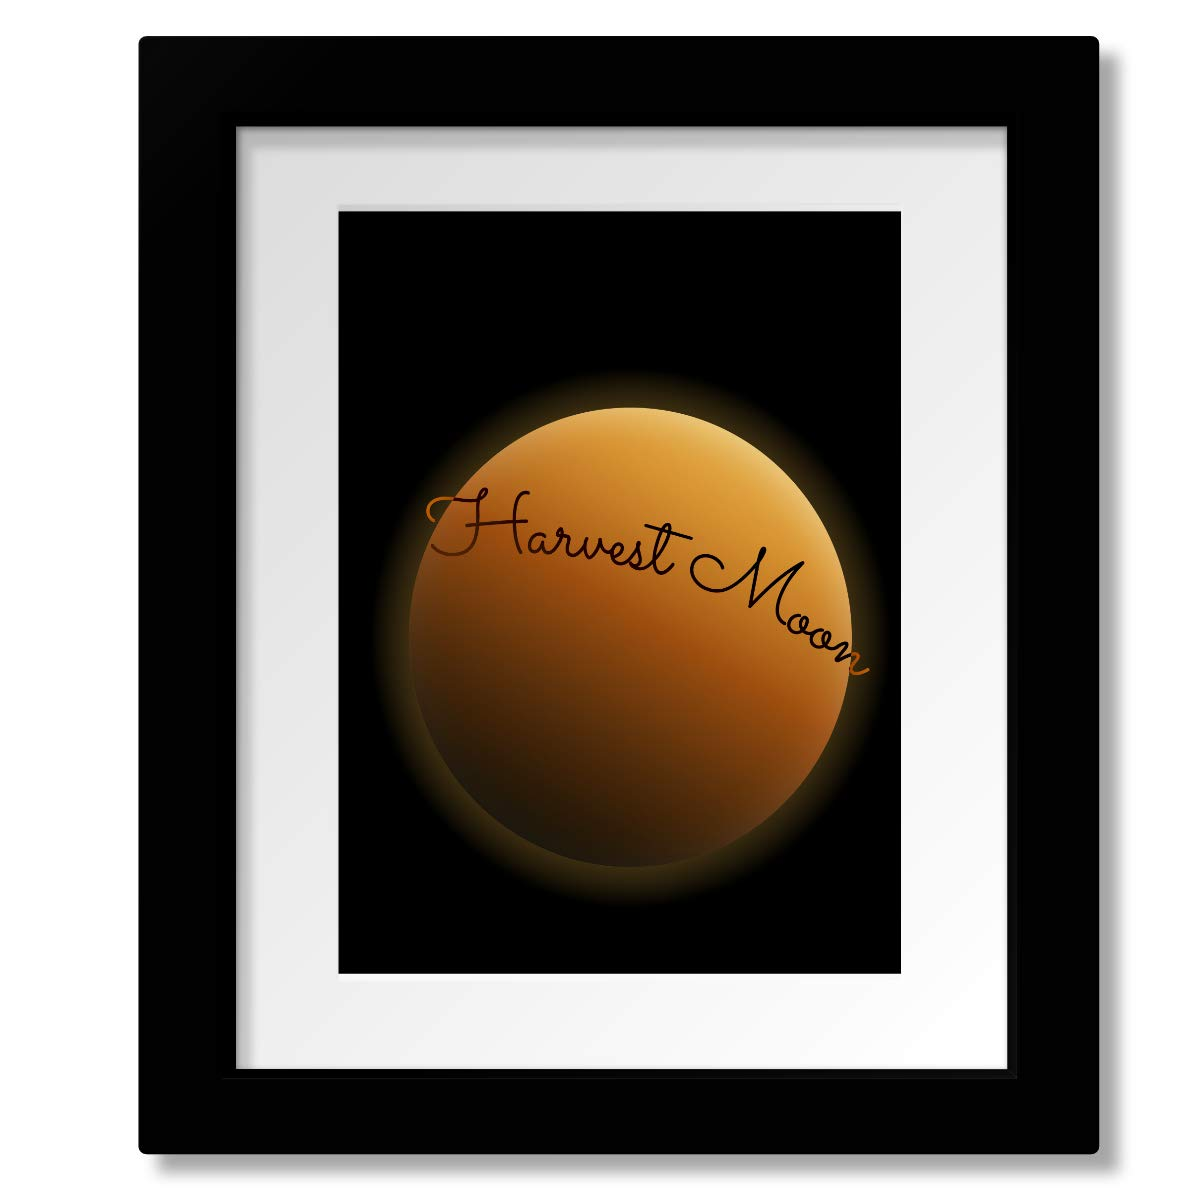 Harvest Washington Mall Moon Song Rock Music Illustration - Super sale period limited Inspired W Lyrically